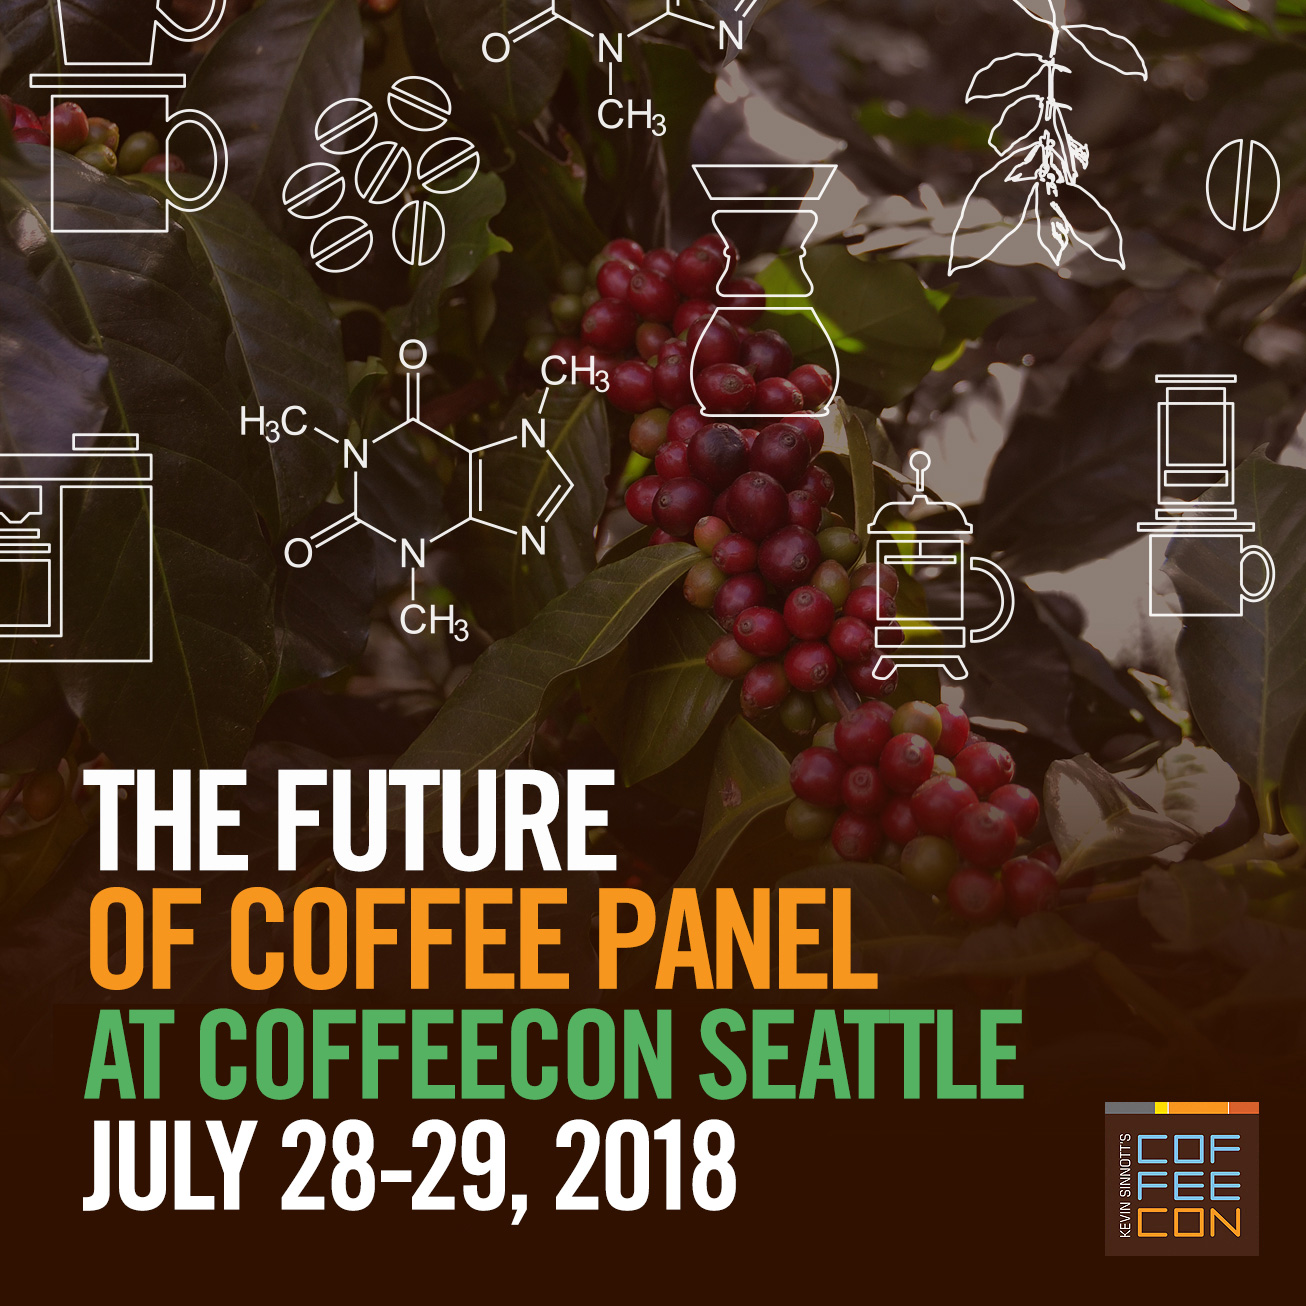 The Future of Coffee Panel